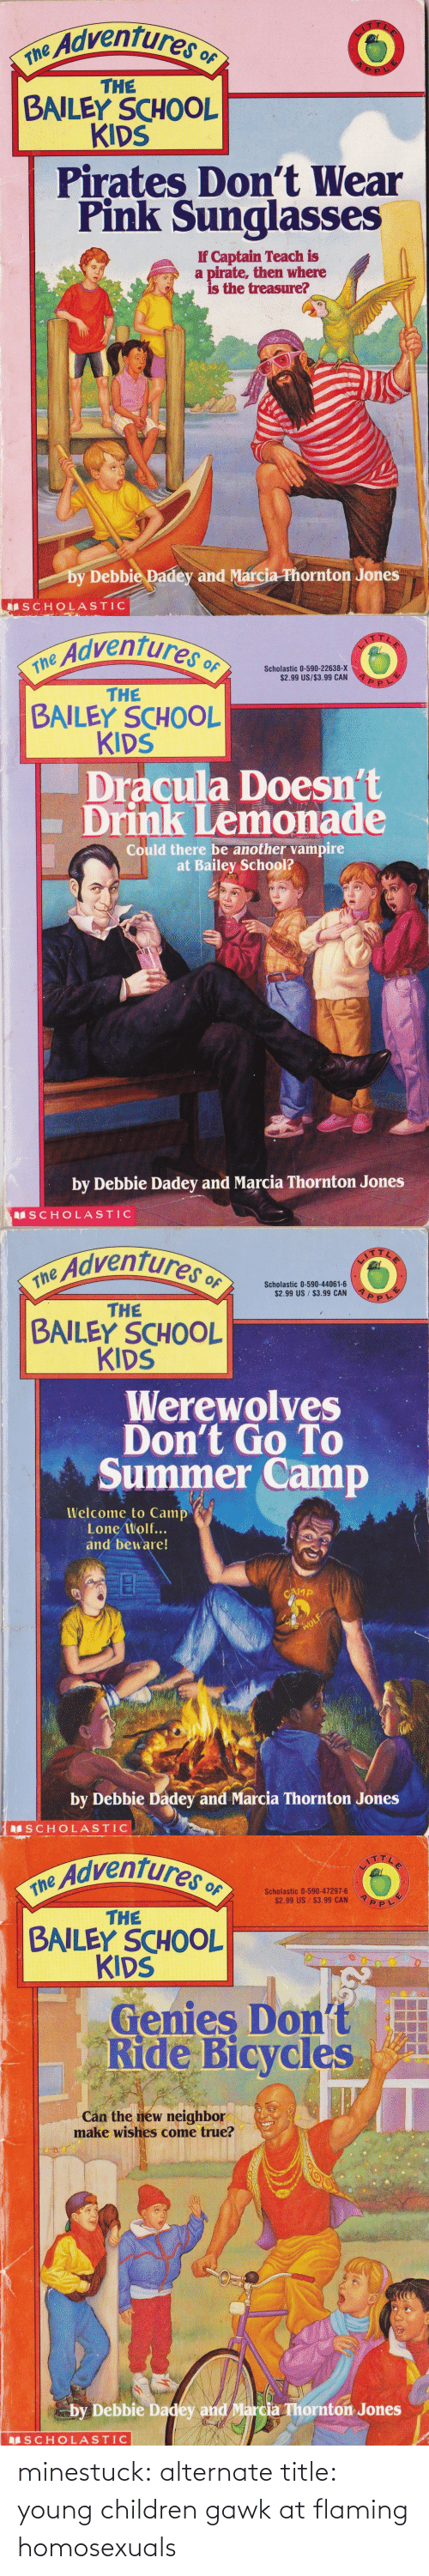 Lemonade: Adventures o  ne  THE  BAILEY SCHOOL  KIDS  Pirates Don't Wear  Pink Sunglasses  If Captain Teach is  a pirate, then where  is the treasure?  by Debbie Padey and Marcia-Phornton Jones  SCHOLASTIC   Adventures  the Advent  Scholastic 0-590-22638-X  $2.99 US/$3.99 CAN  THE  BAILEY SCHOOL  KIDS  Dracula Doesn't  Drink Lemonade  Could there be another vampire  at Bailey School?  by Debbie Dadey and Marcia Thornton Jones  S CHOLASTIC   Adventures o  $2.99 US $3.99 CAN  THE  BAILEY SCHOOL  KIDS  Werewolves  Don't Go To  Summer Camp  Welcome to Camp  Lone Wolf...  and beware!  by Debbie Dadey and Marcia Thornton Jones  S CHOLASTIC   e Adventures  Scholastic 0-590-47297-6  $2.99 US $3.99 CAN  THE  BAILEY SCHOOL  KIDS  Genies Dont  Ride Bicycles  Cán the new neighbor  make wishes come true?  by Debbie Dadey and Marcia Thornton Jones  SCHOLASTIC minestuck:  alternate title: young children gawk at flaming homosexuals